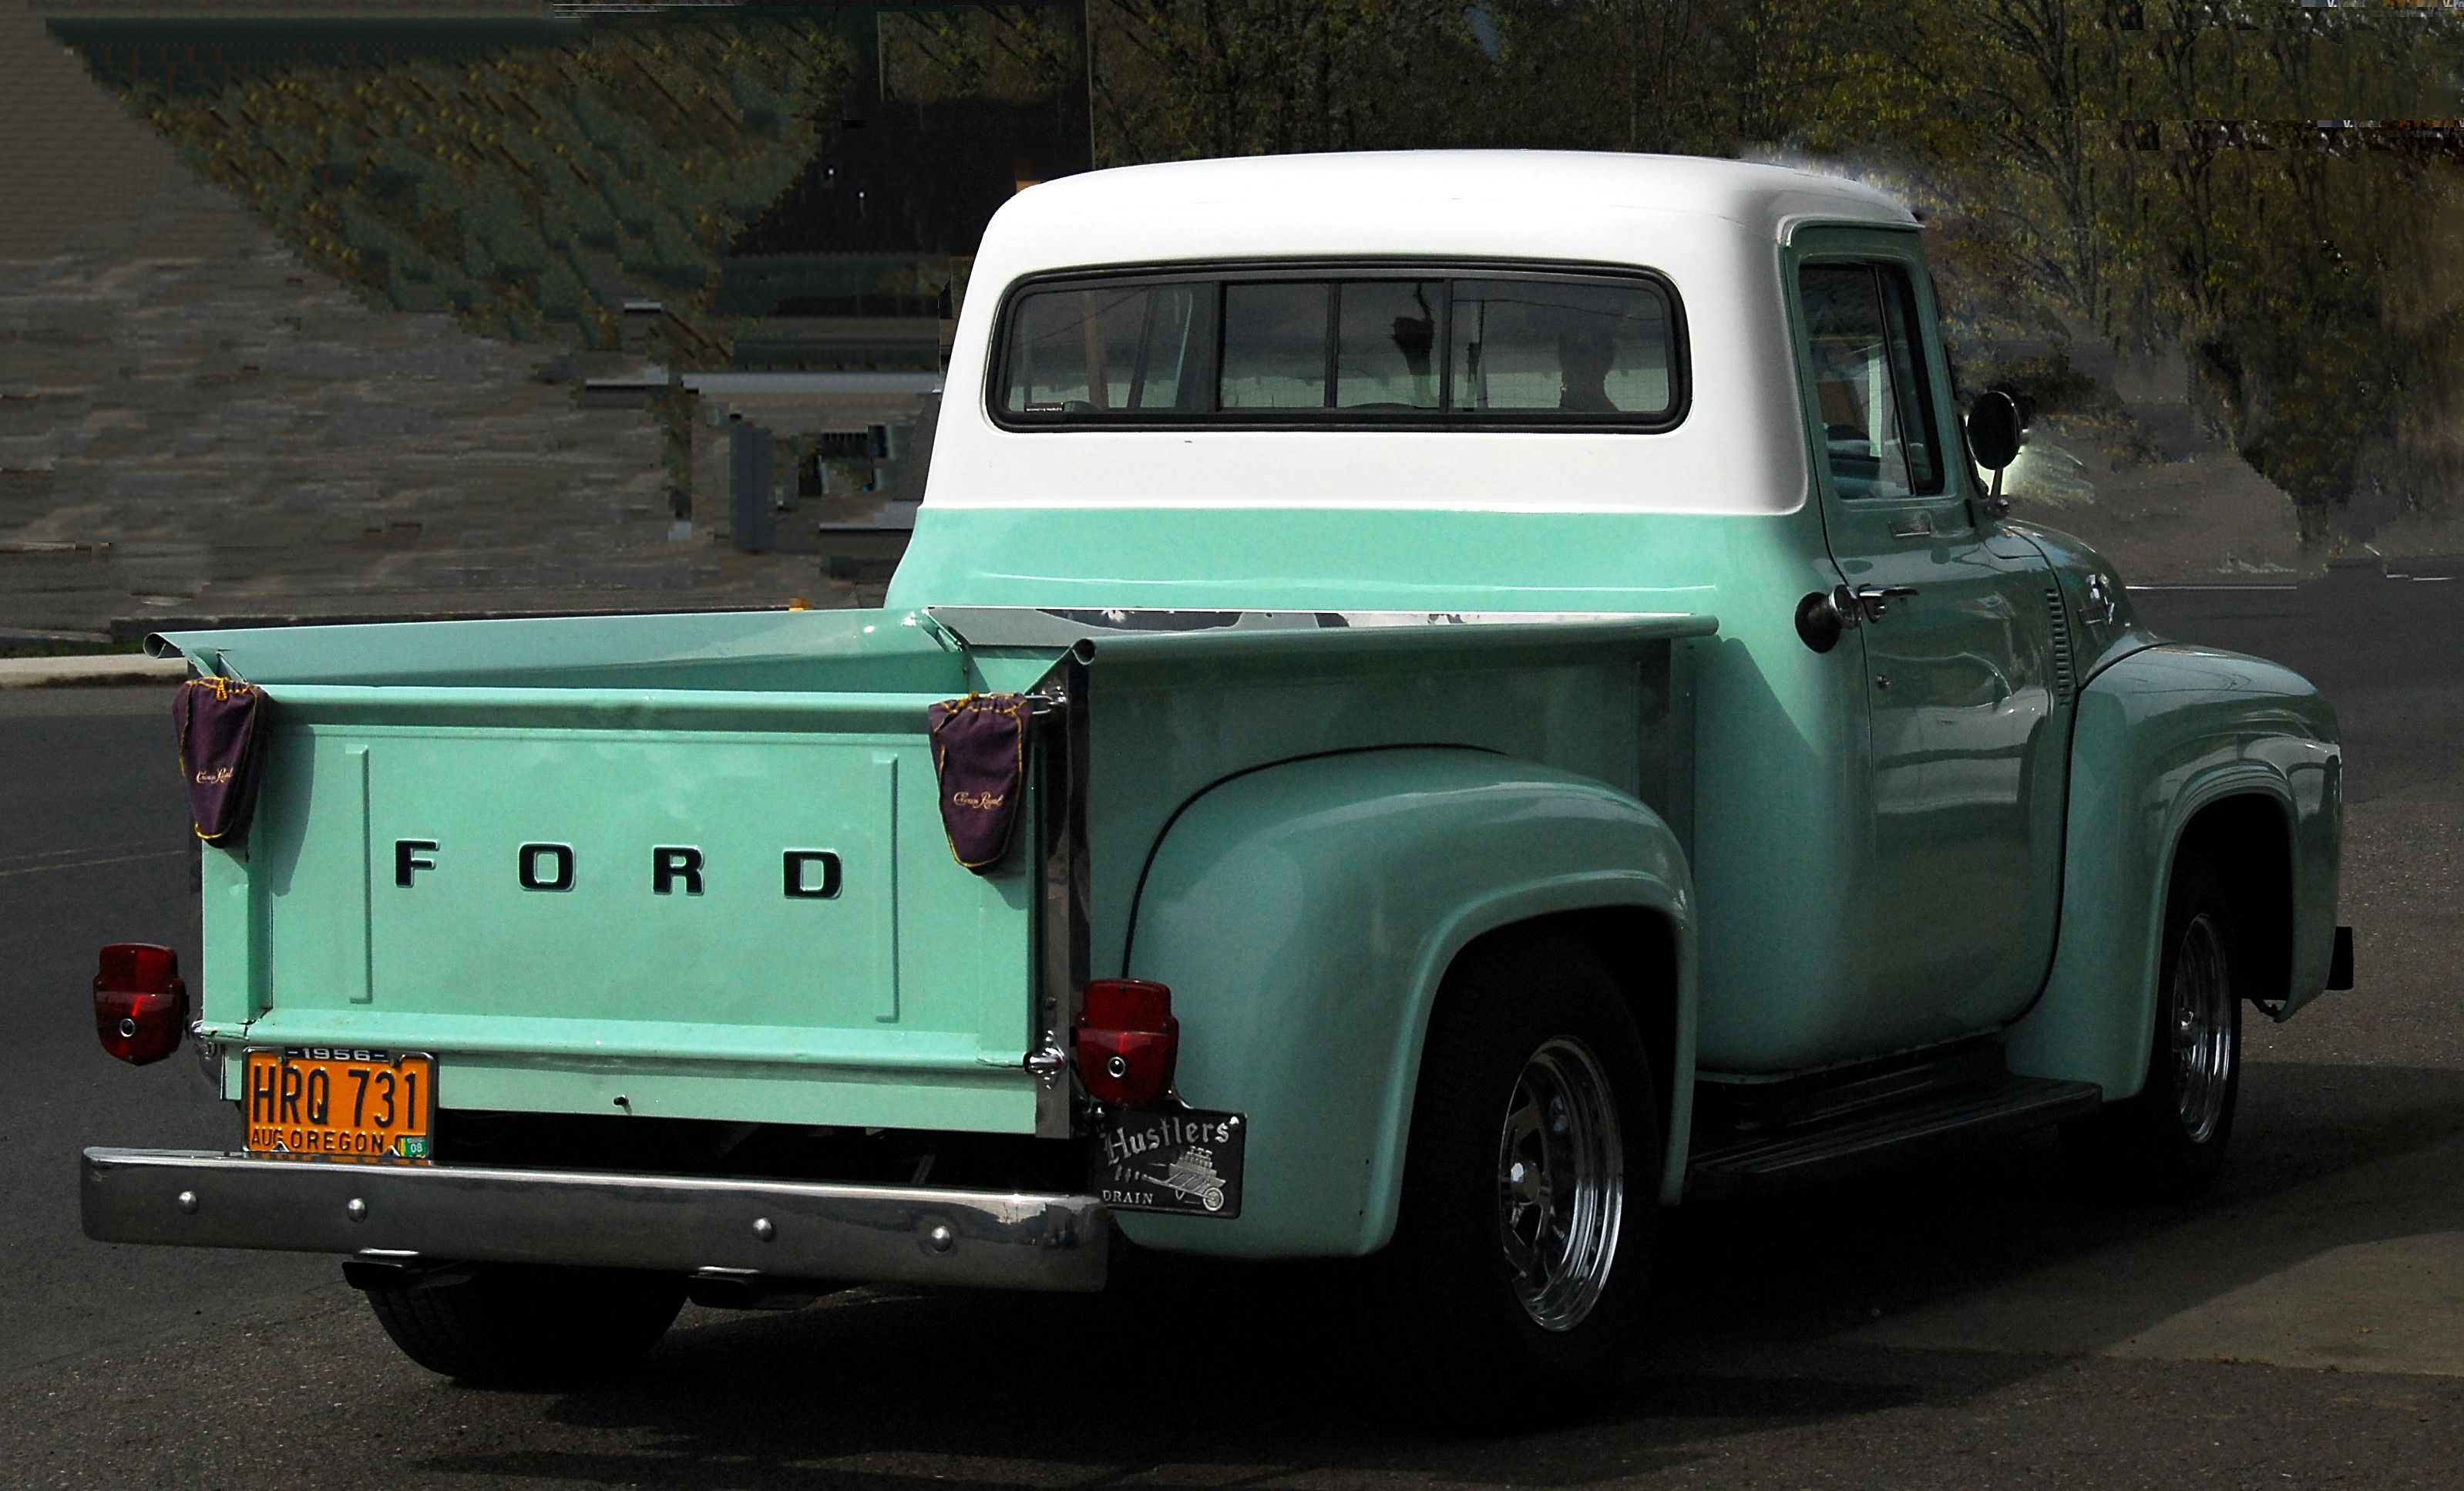 Old restored ford,teal paint job | old cars/trucks | Pinterest ...